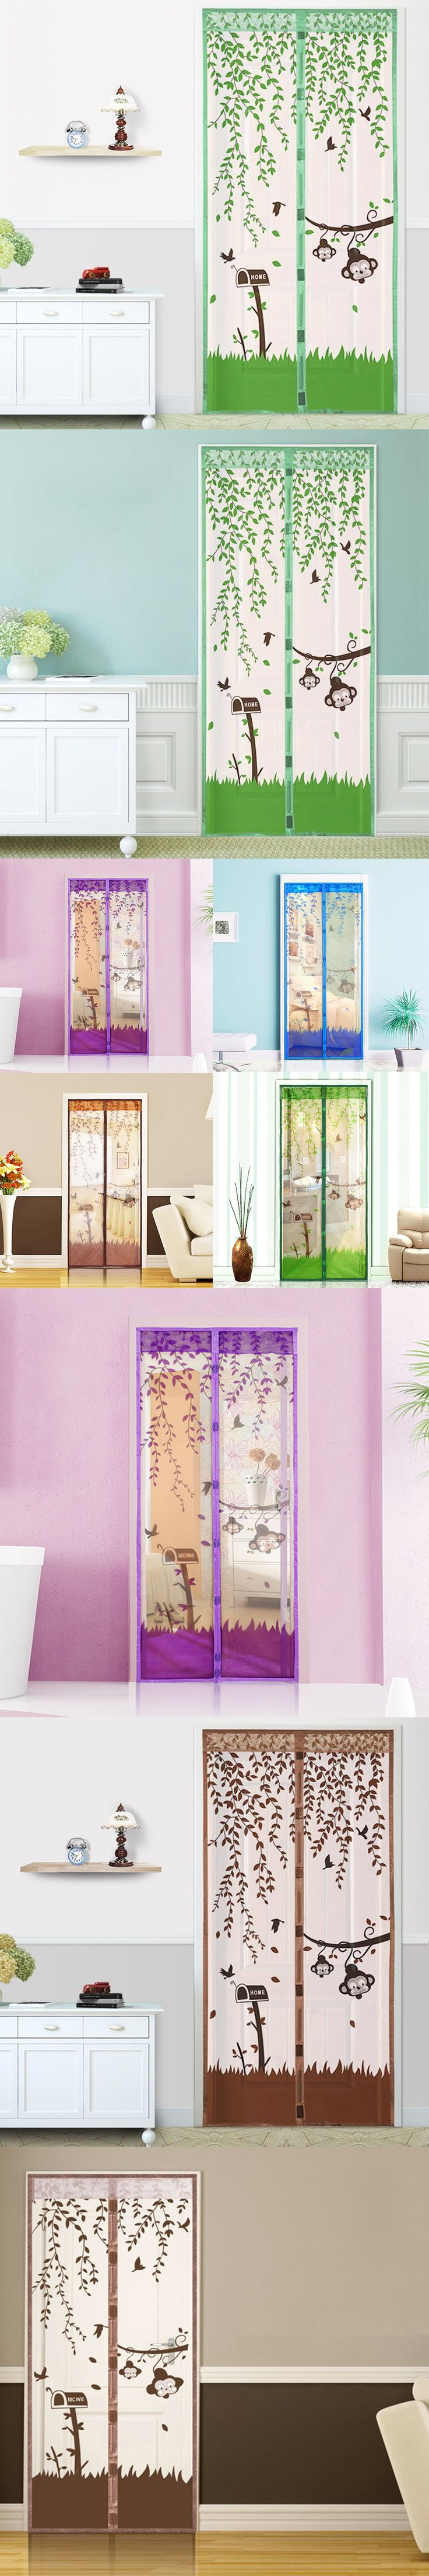 1PC High Quality 90*210cm/100*210cm Magnetic Mesh Screen Door Fly Bug Insect Mosquito Net Curtain